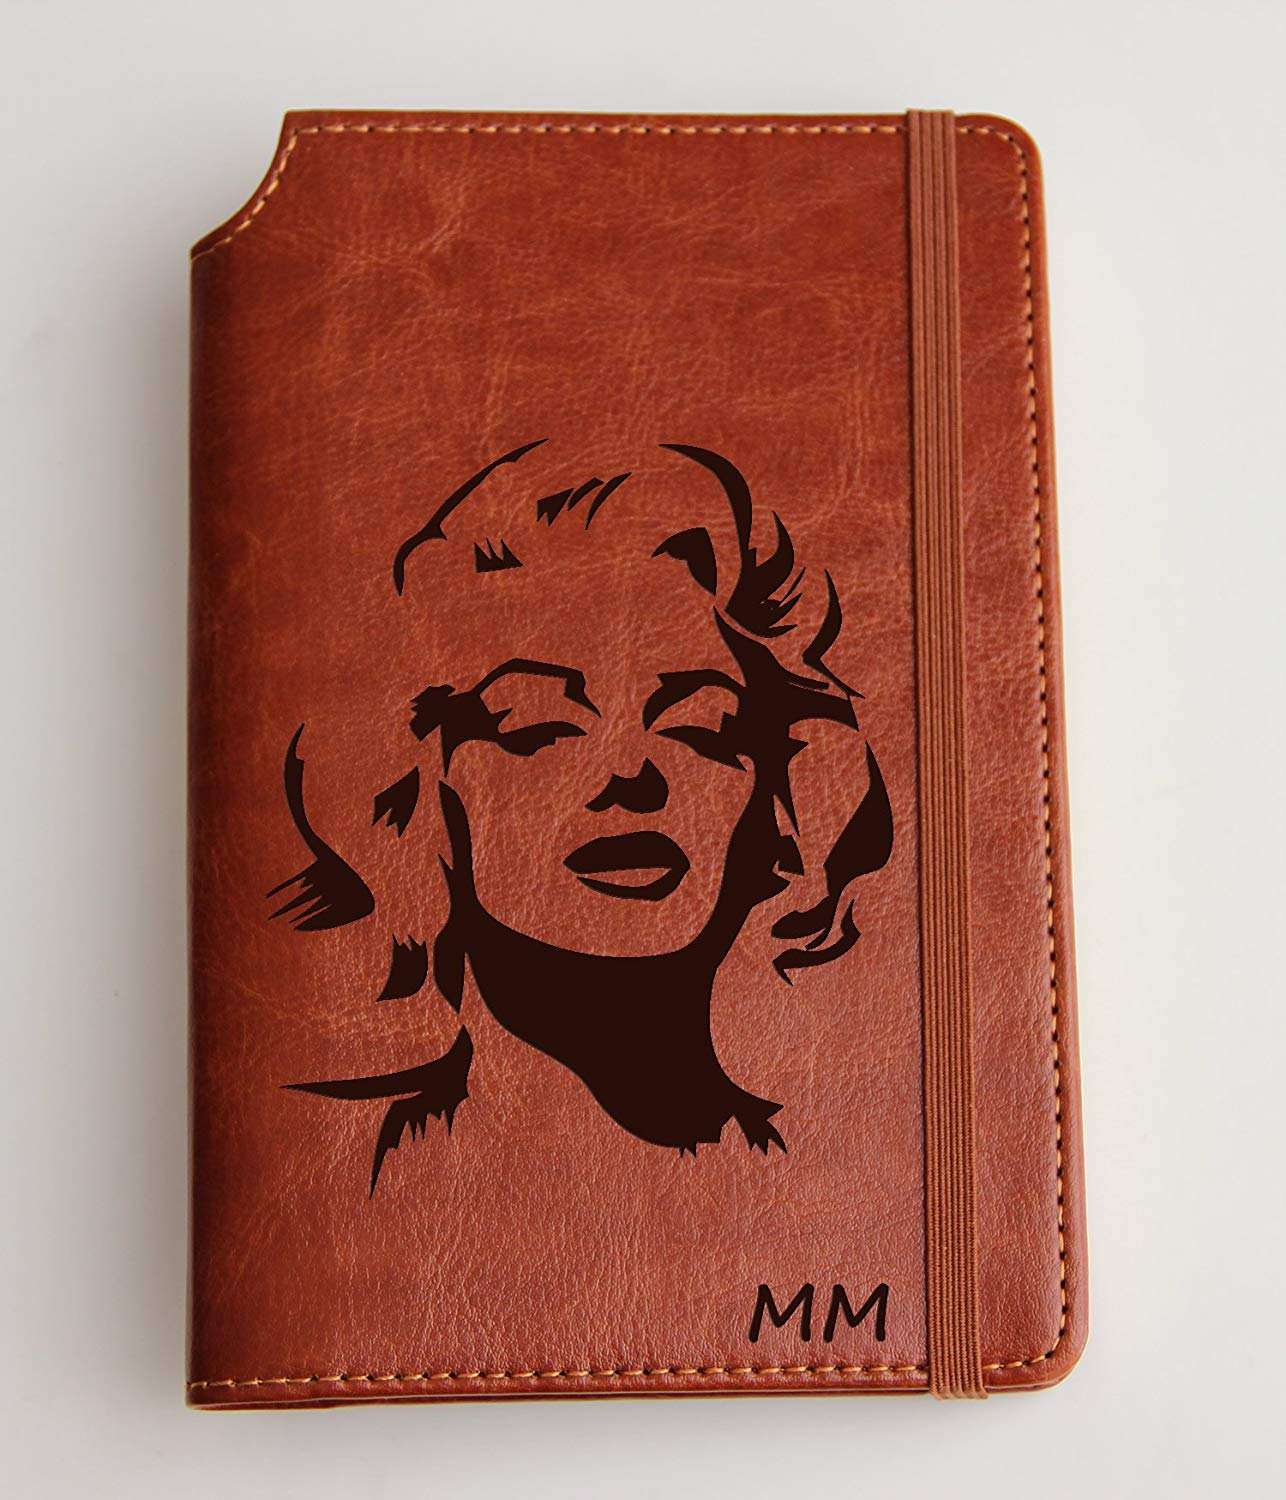 Marilyn Monroe illustrated Journal Customizable laser engraved Fully Customizable laser engraved personalized Journal with custom quote custom text leather bound with elastic band with the same color